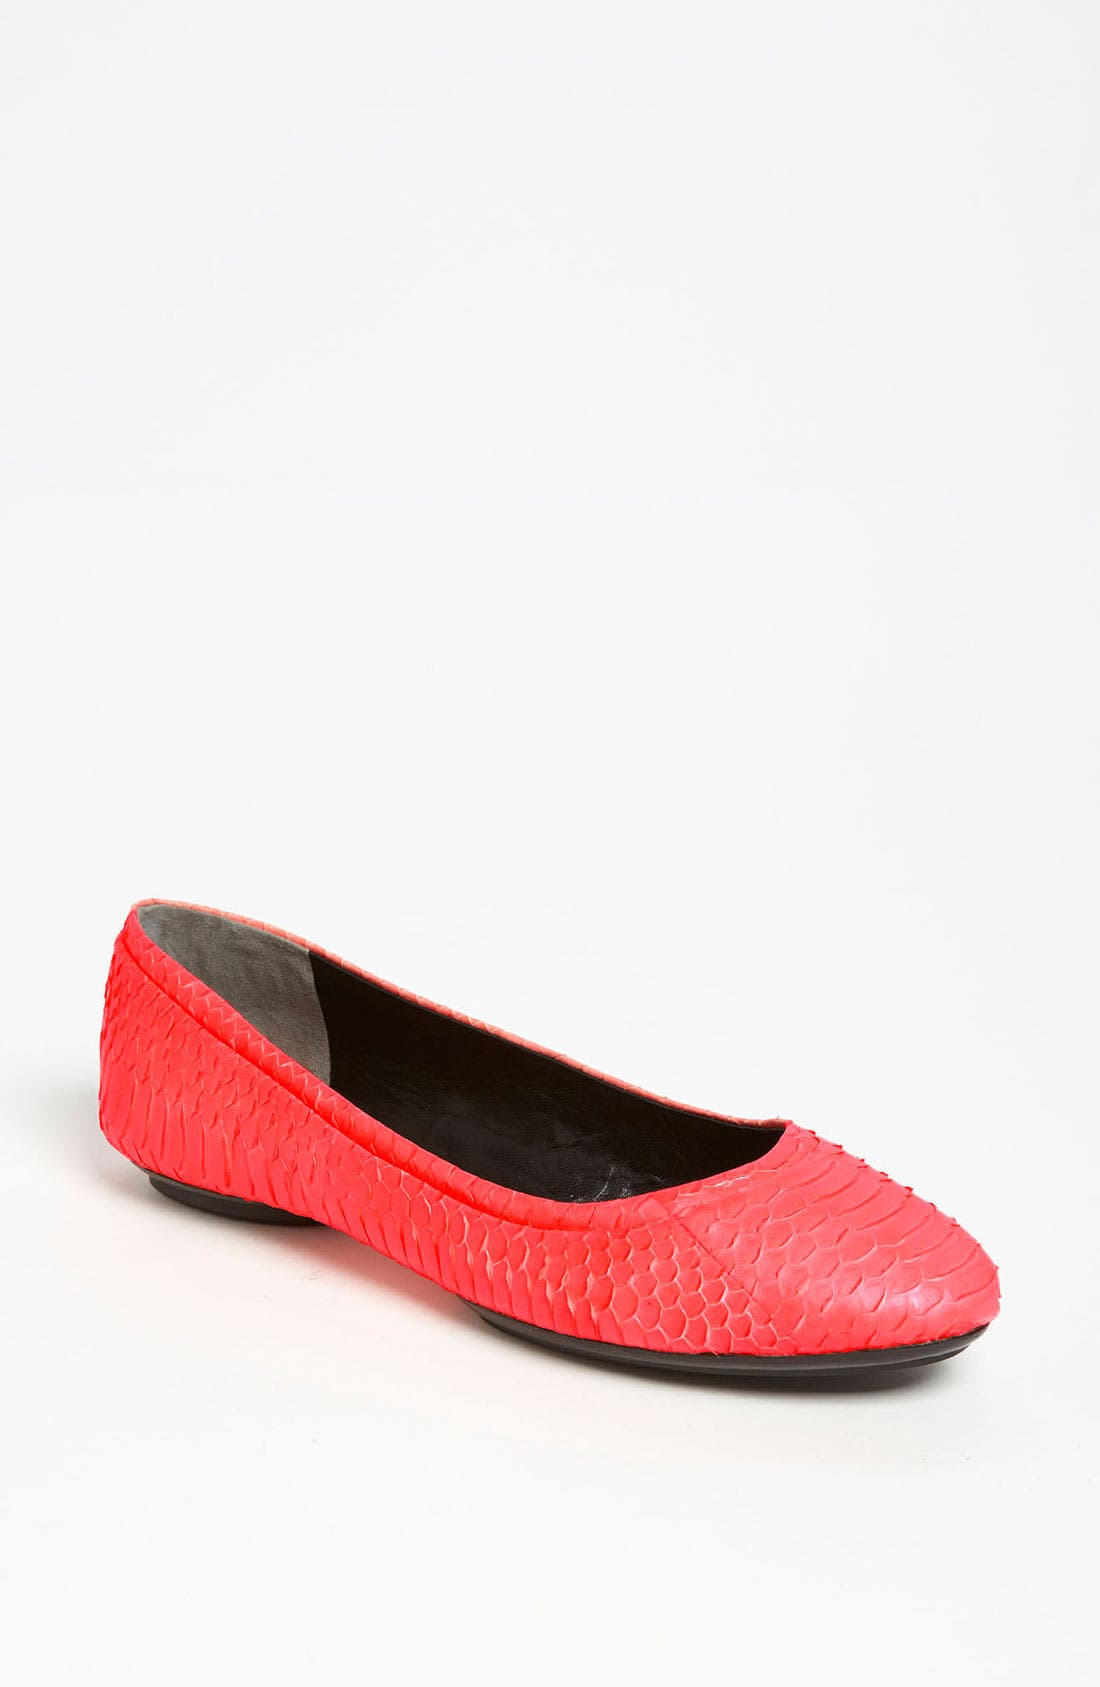 Alternate Image 1 Selected - Rachel Roy 'Brigitte' Flat